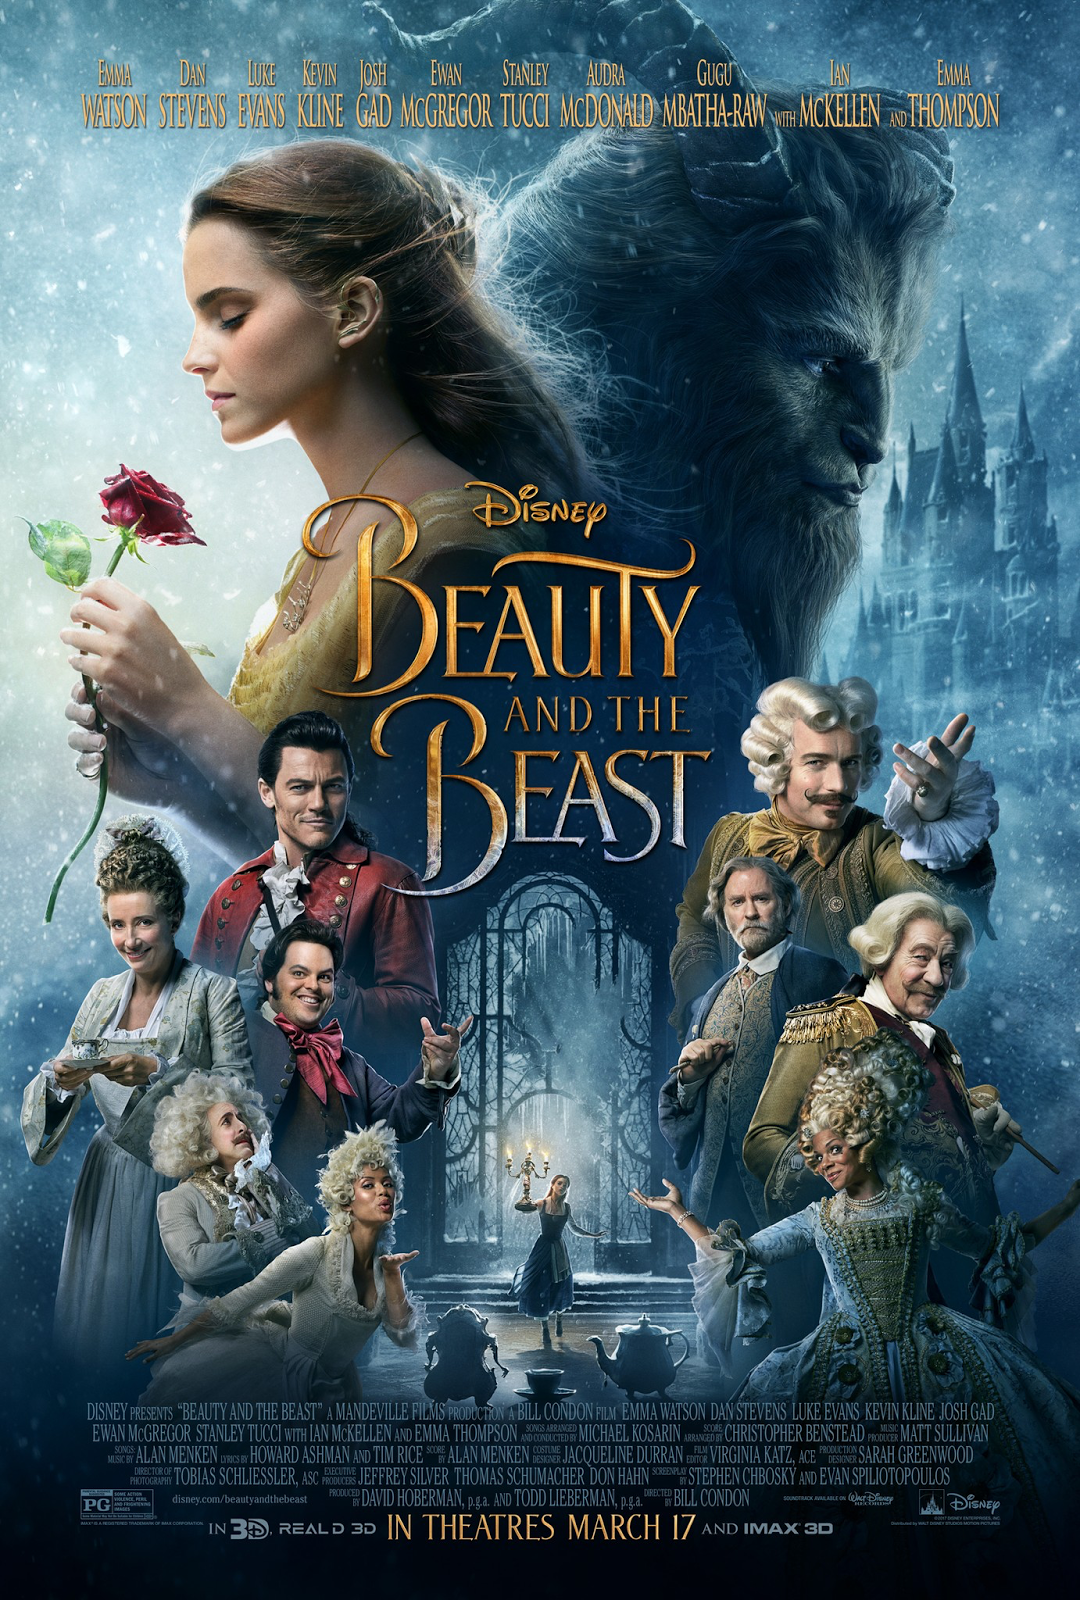 Beauty and the Beast - 4 Gavels 71% Rotten Tomatoes - The